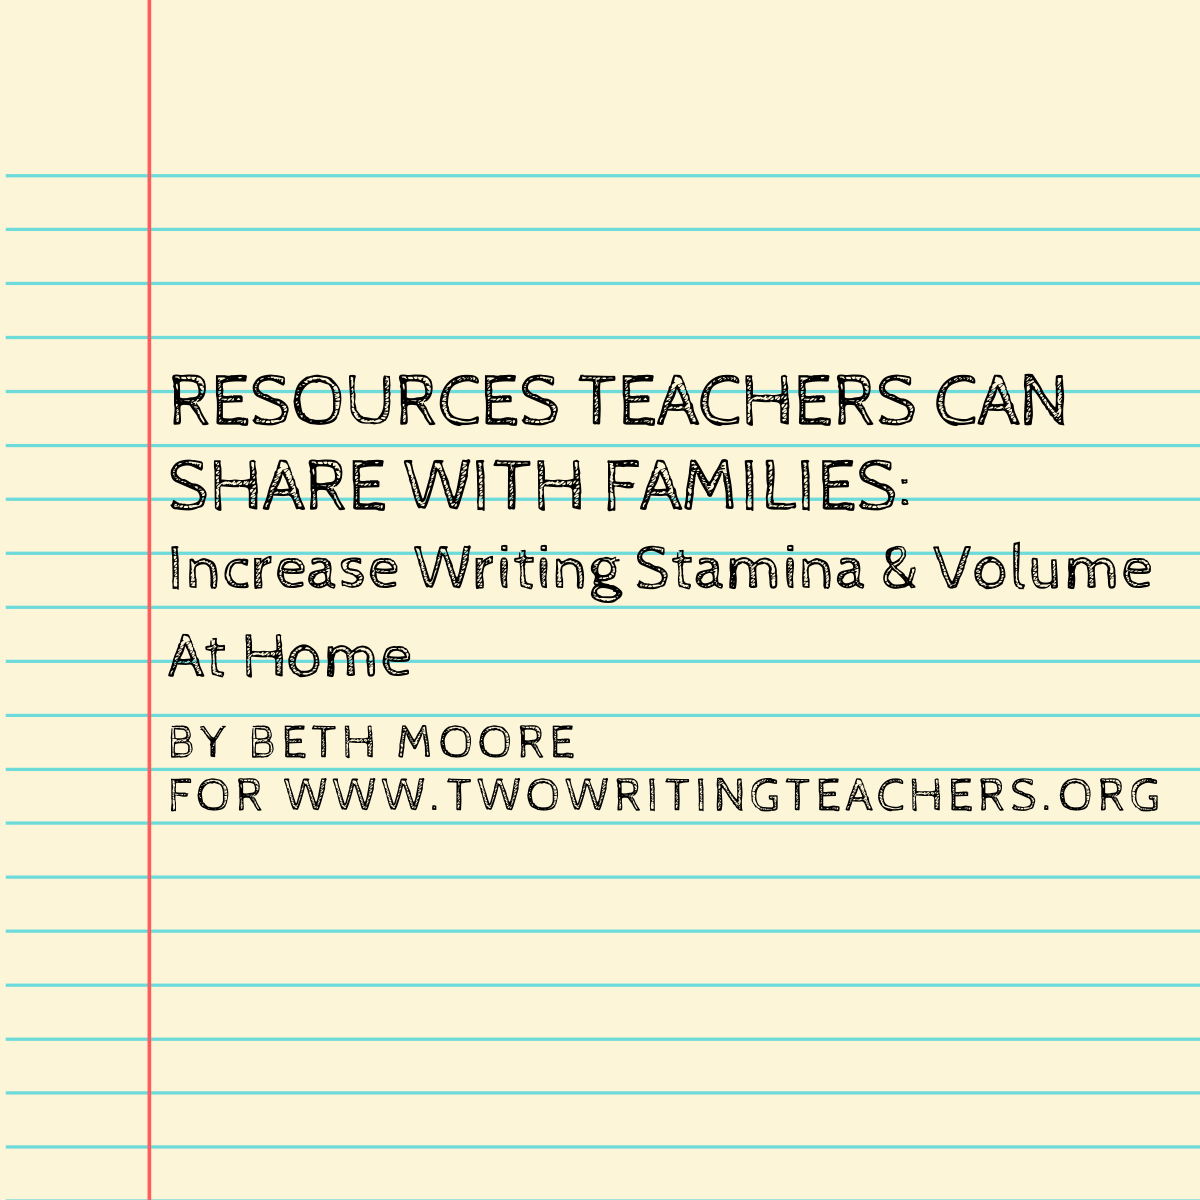 Resources Teachers Can Share With Families: Increase Writing Volume and Stamina at Home